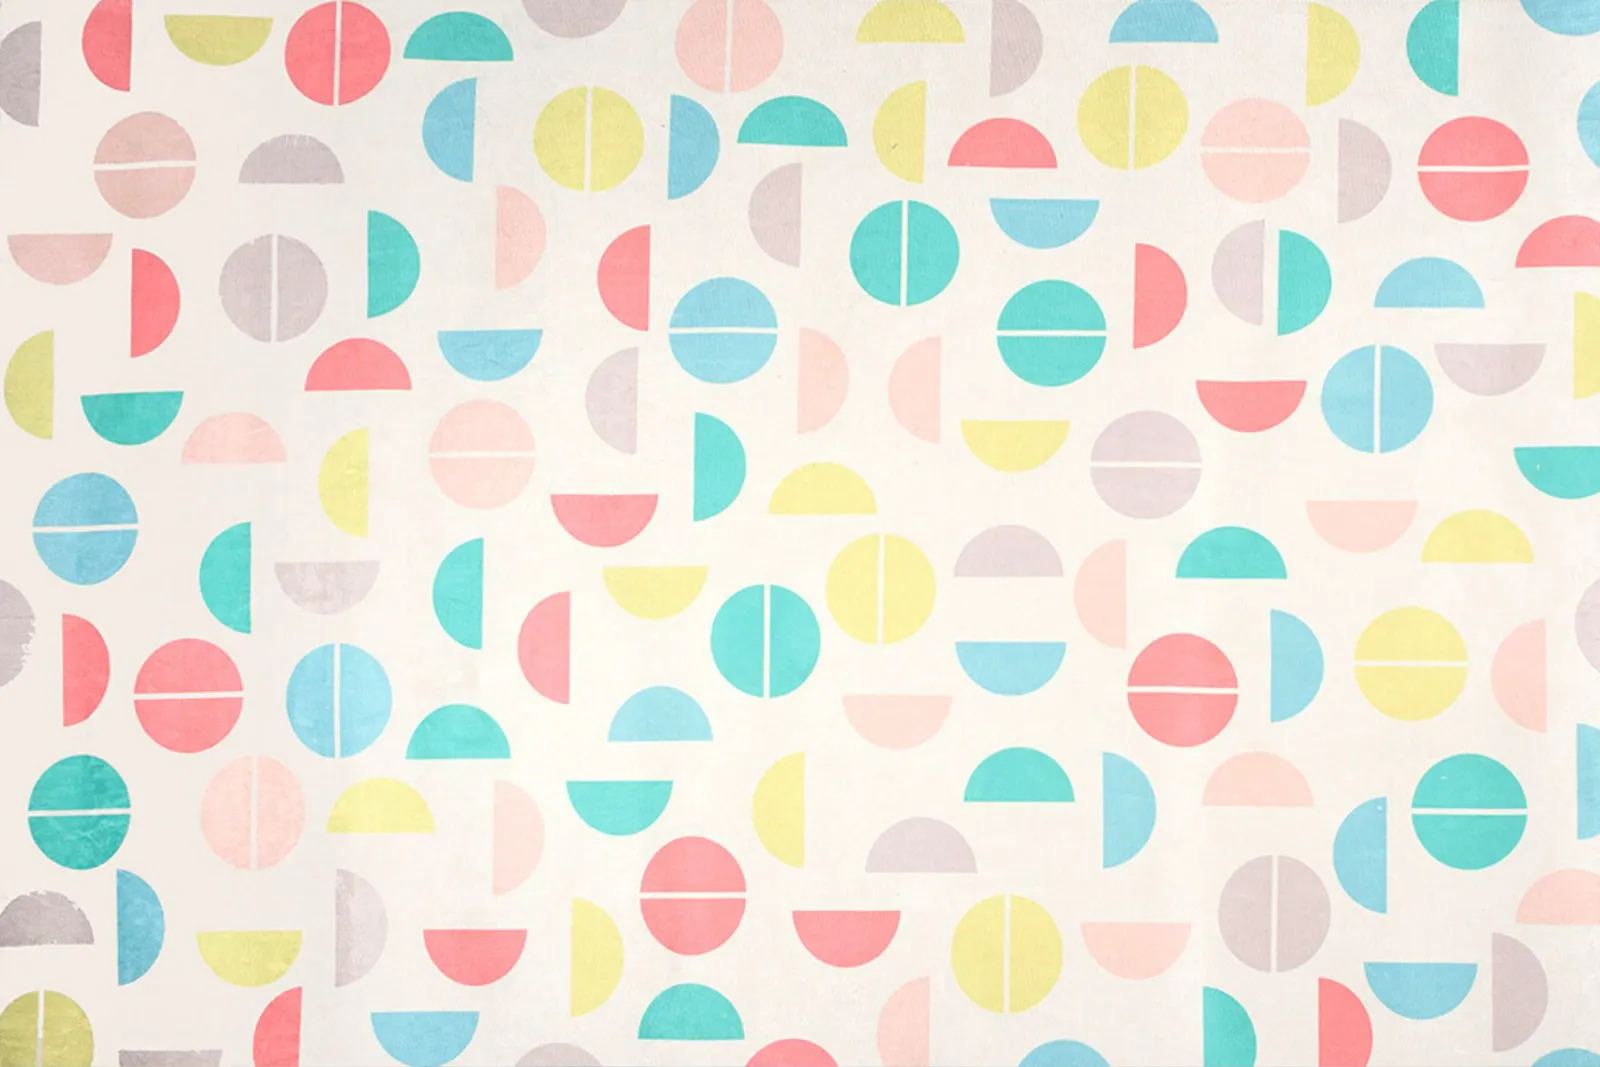 Tapete quarto infantil 100 x 150 cm estampa Colorball Branco  - Pomelo Decor